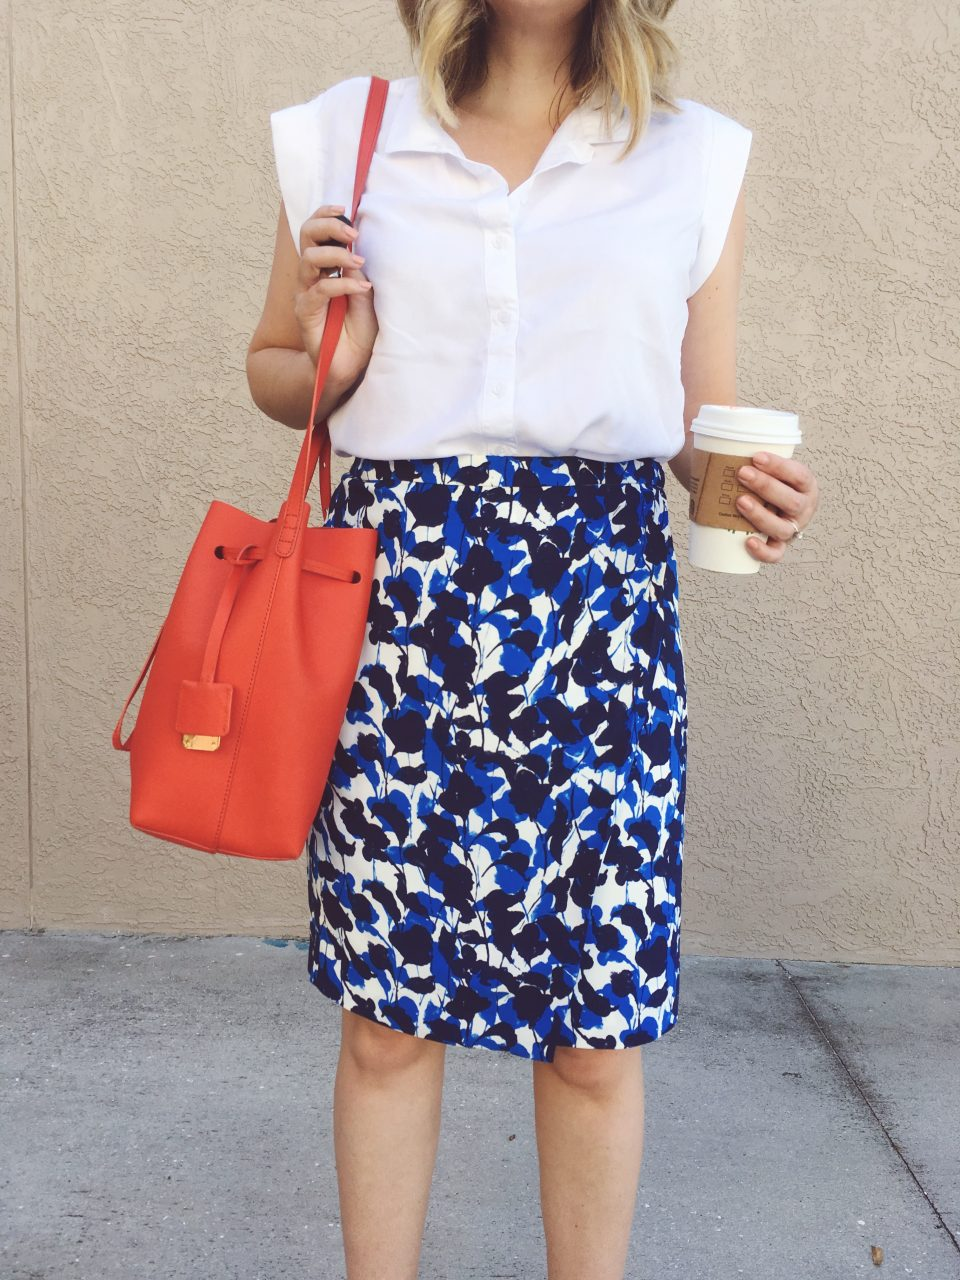 how to wear a wrap skirt, wear to work, work outfit ideas, style blog